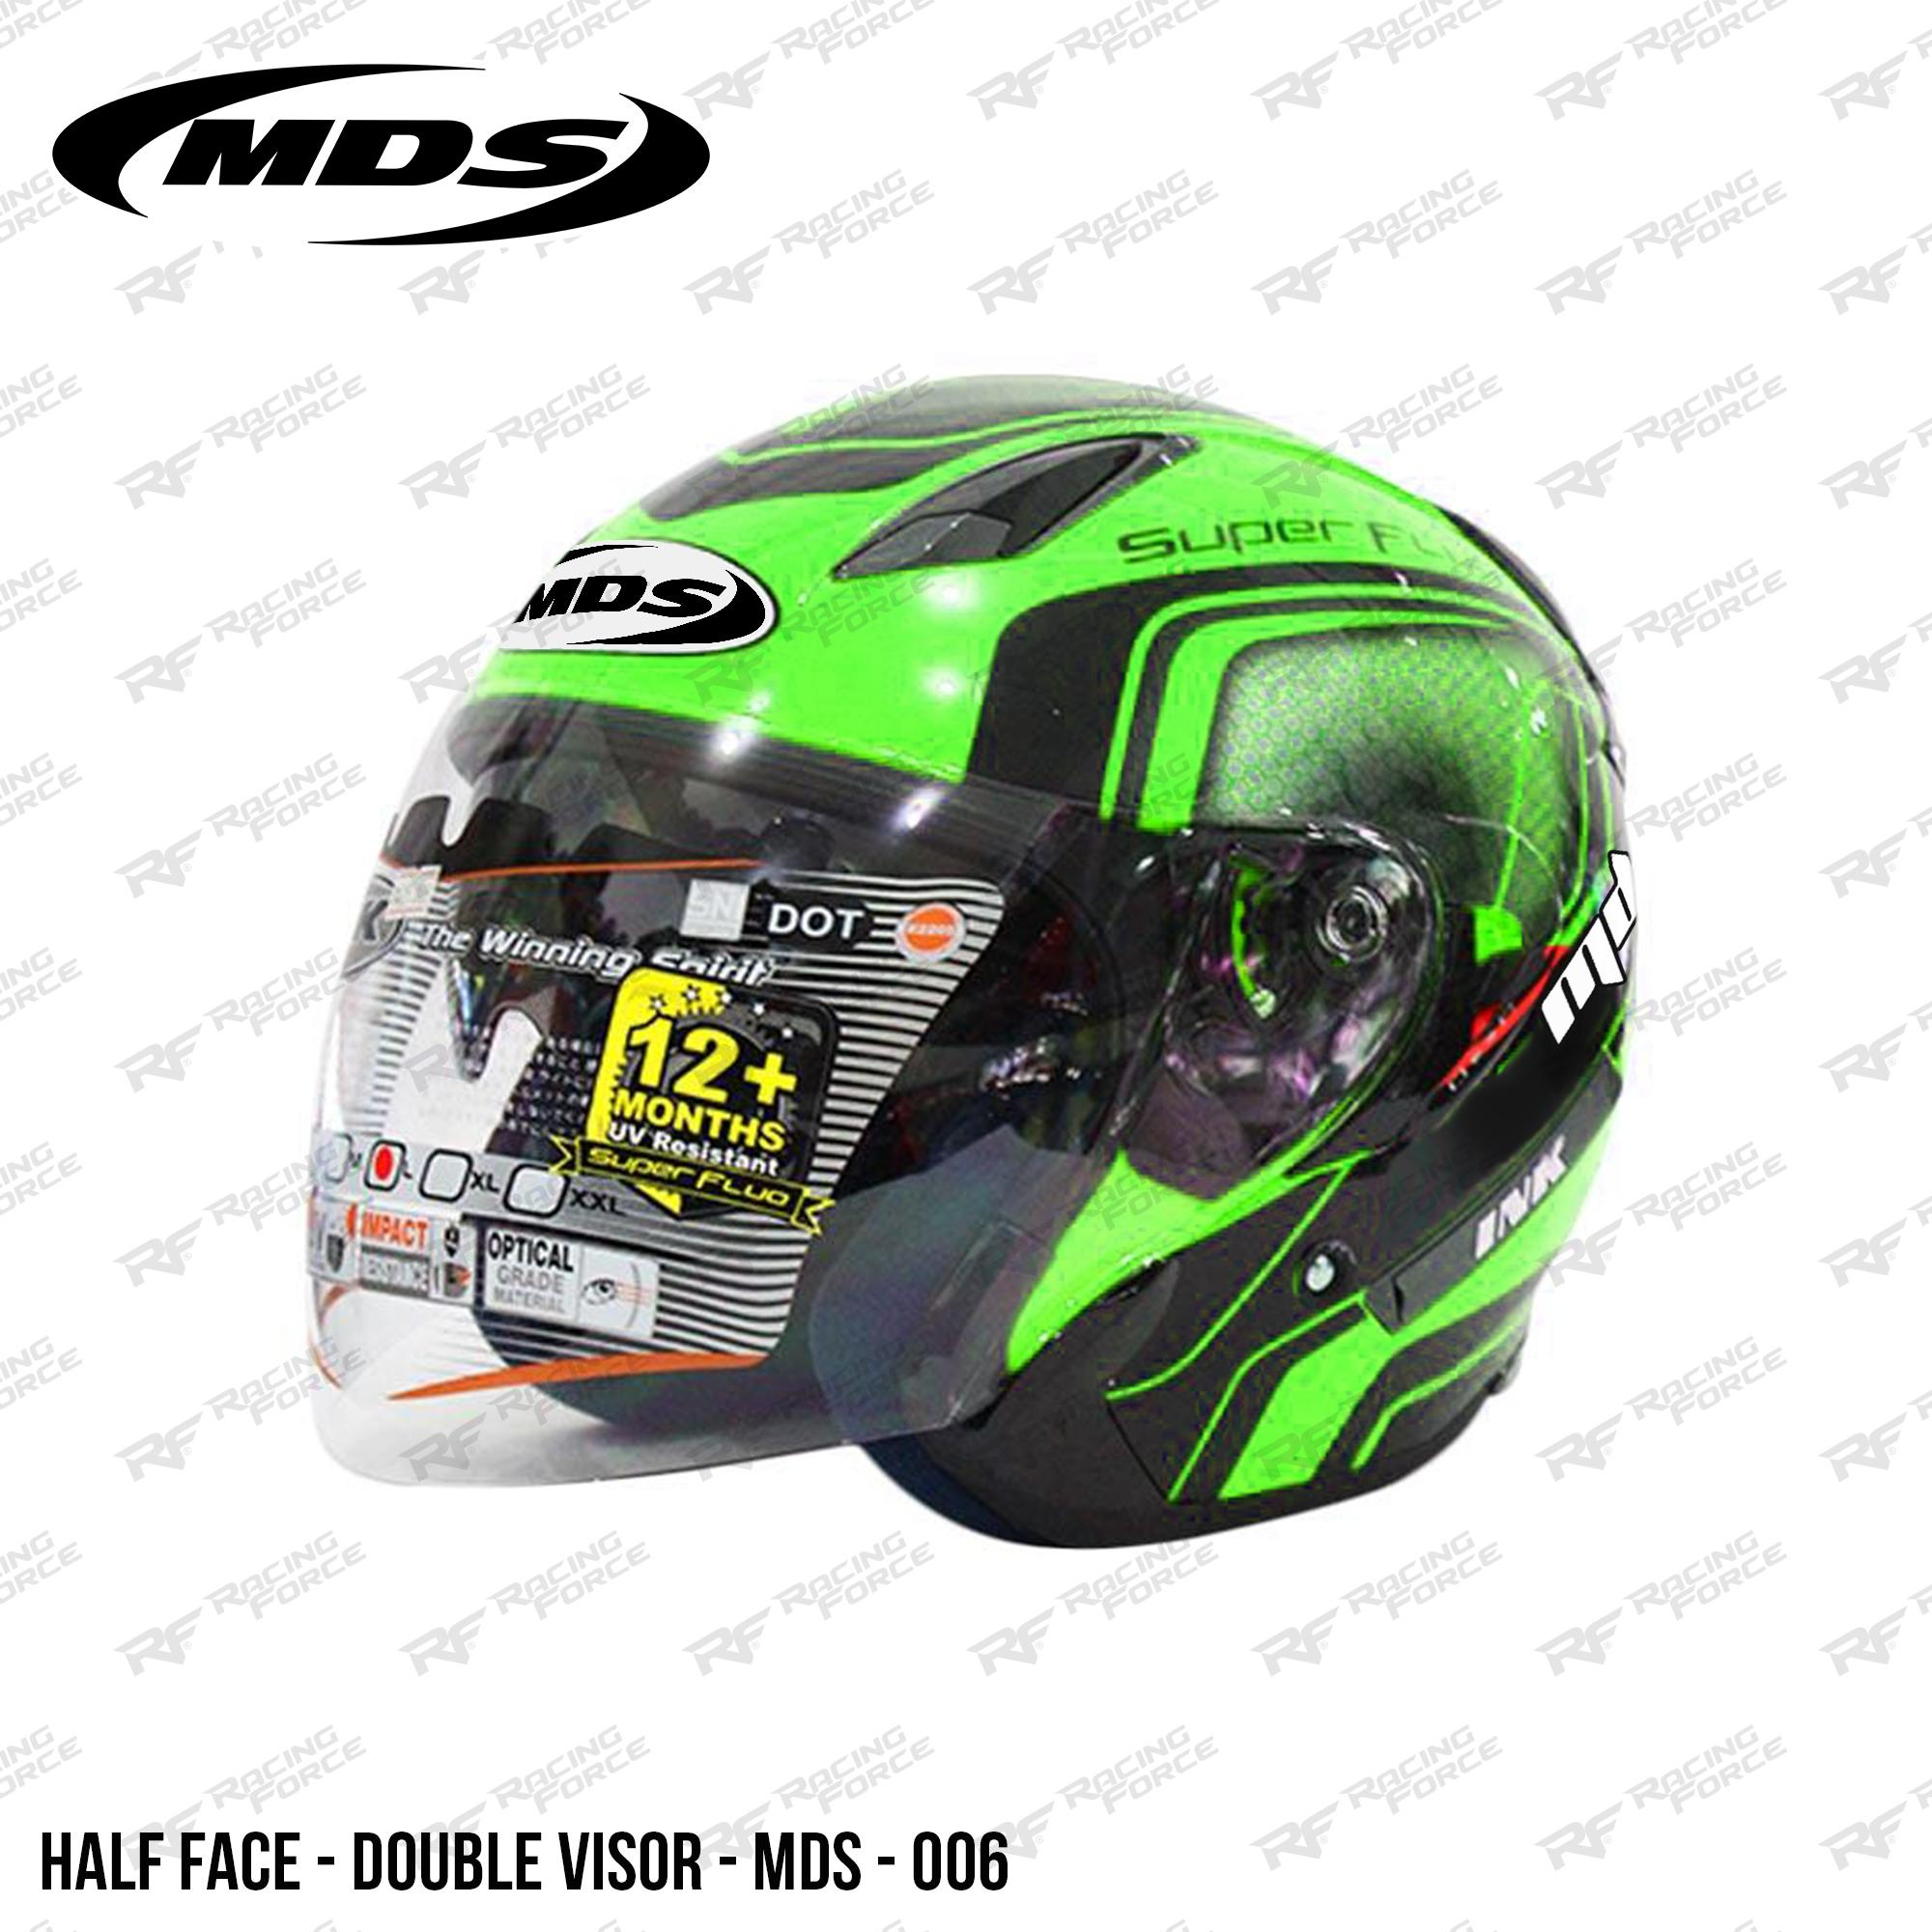 mds Philippines - mds Helmet for sale - prices & reviews | Lazada